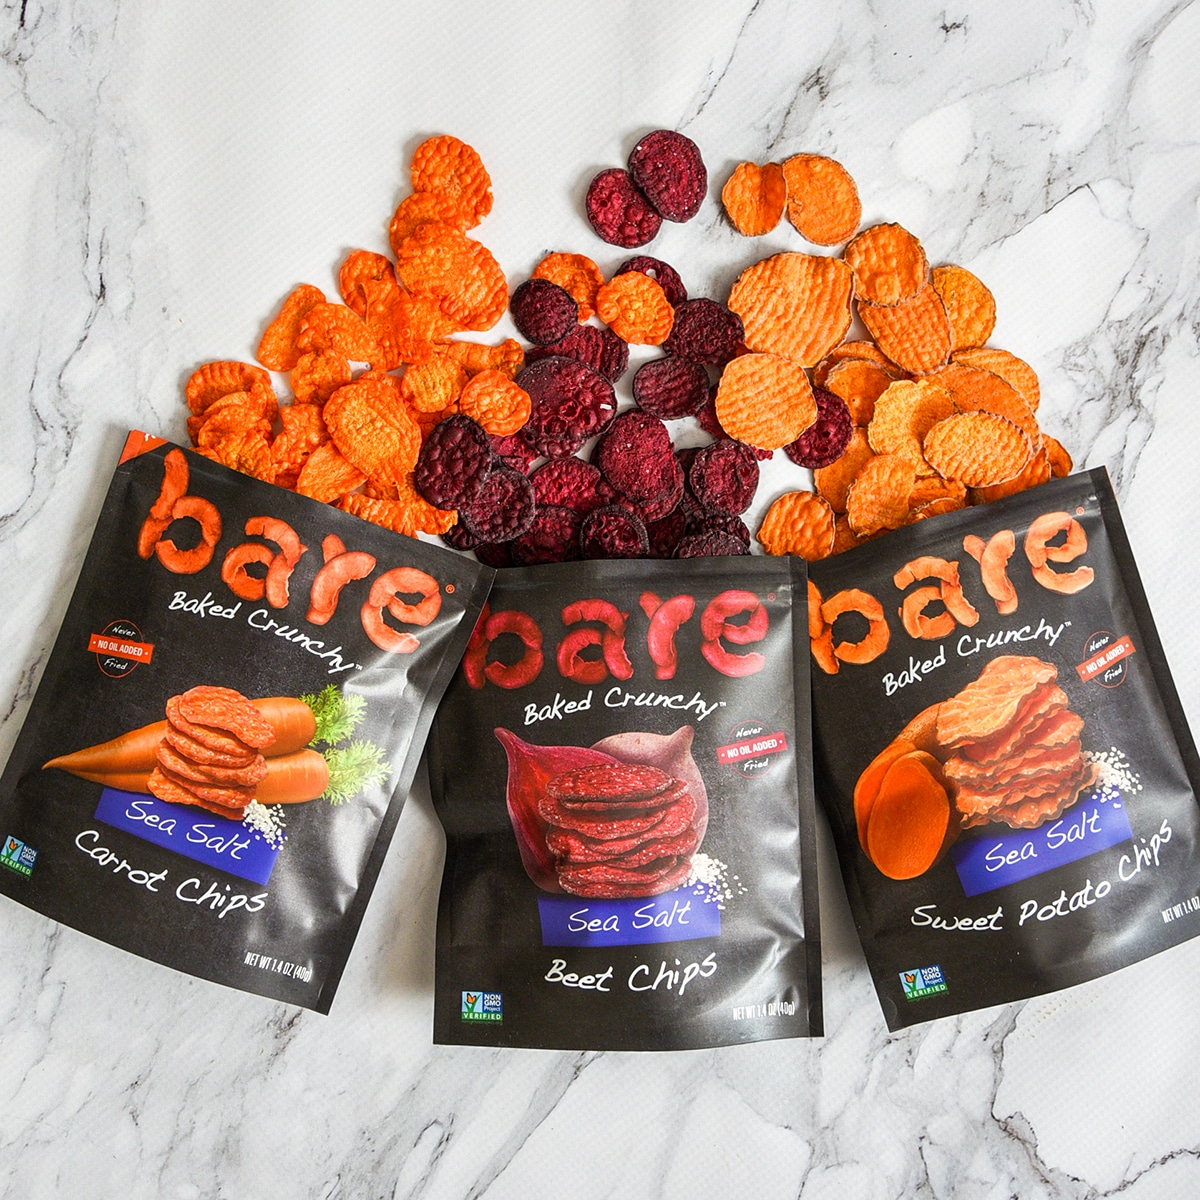 Bare Snacks Launches Baked Crunchy Veggie Chips